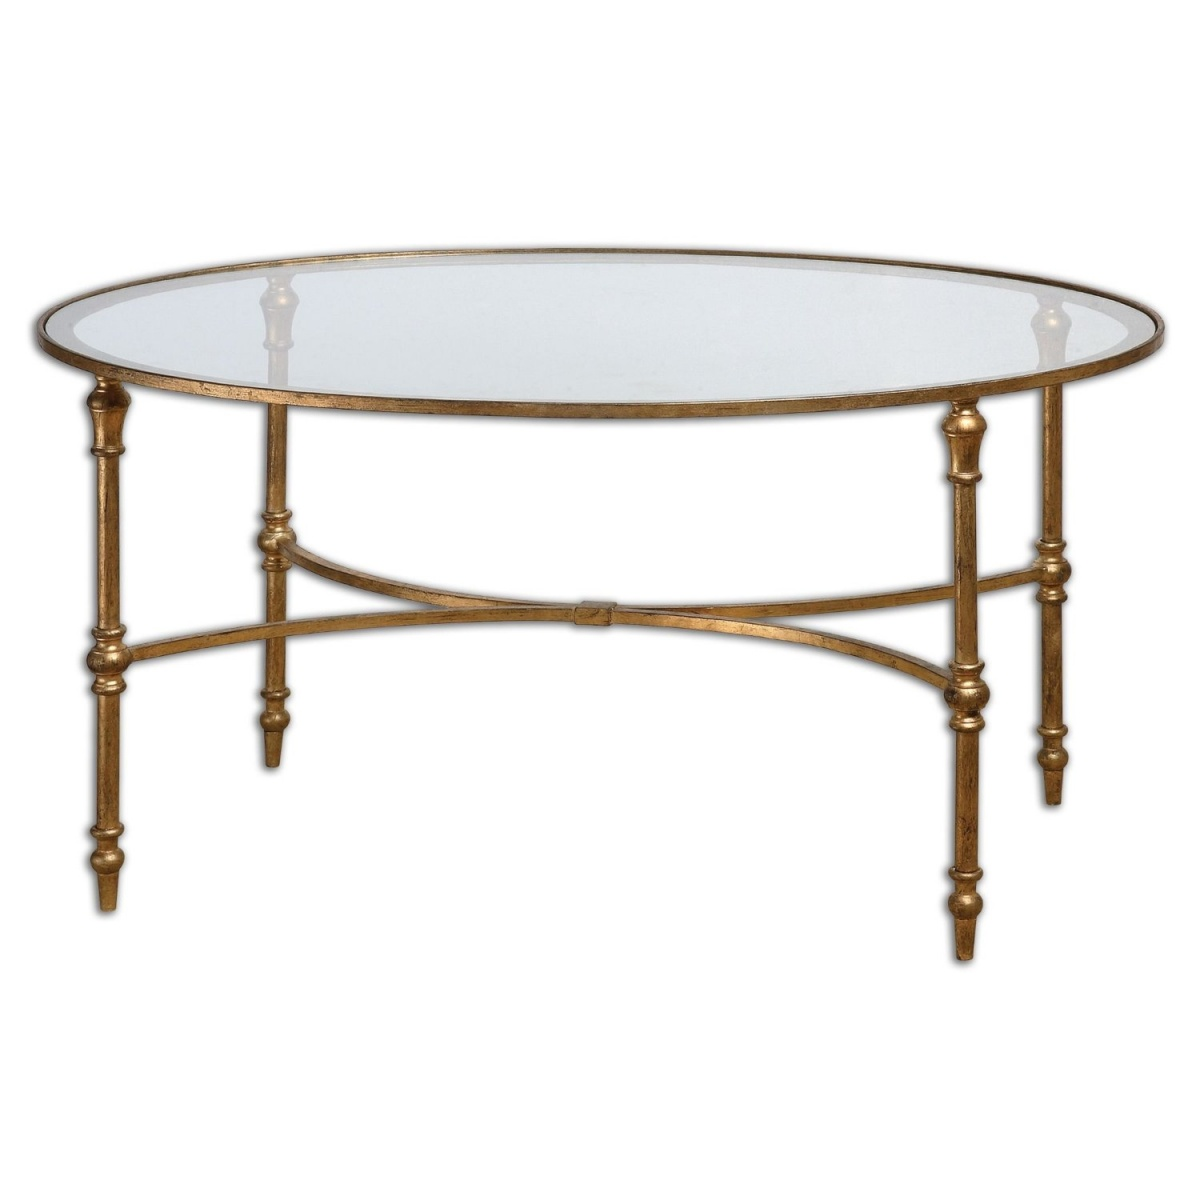 Round Glass Coffee Table With Iron Legs And Frame Is A Good Material Combination Gold Round Glass Coffee Table Round Glass And Metal Coffee Table (View 6 of 10)